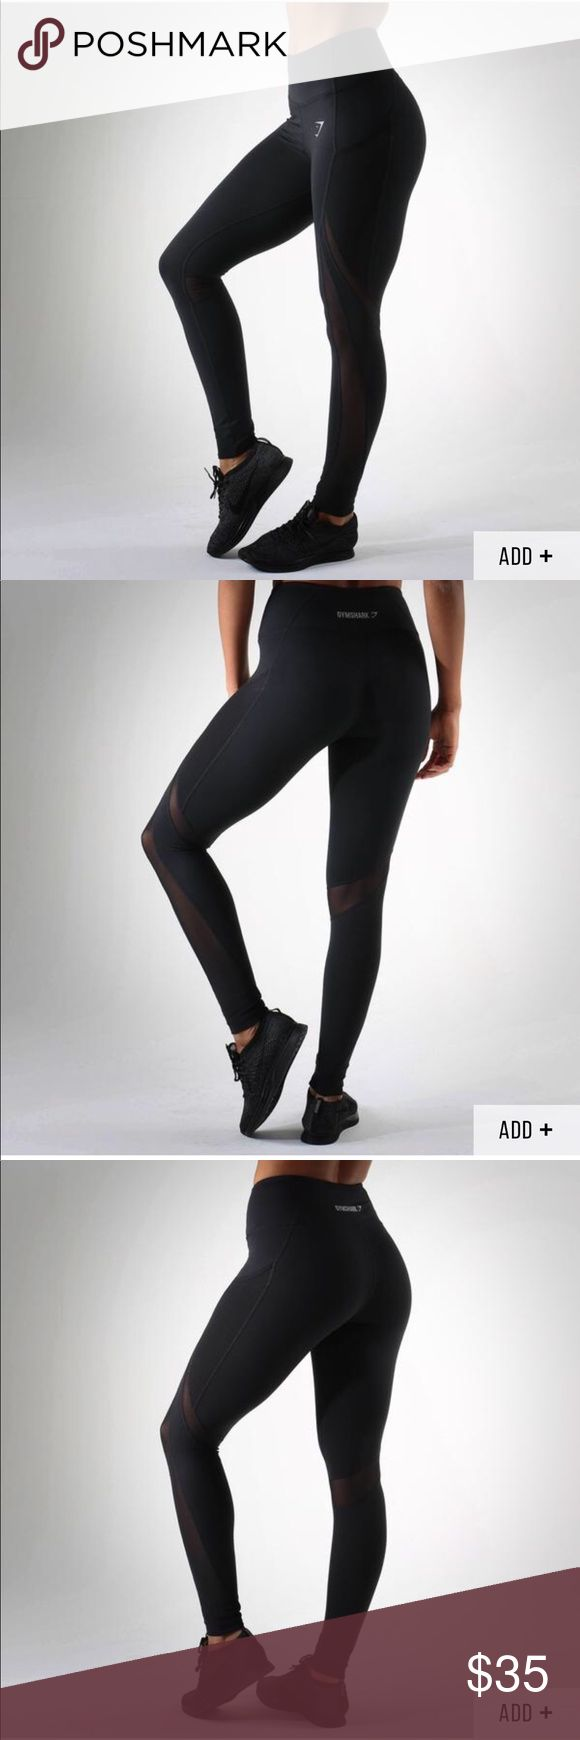 """Gymshark Sleek Sculpture Leggings PRODUCT INFO  The Sleek Sculpture Leggings are back and better than ever before. Ready to give you the coolest, most comfortable workout.  - High waisted - Hidden pocket - Sweat wicking  87% Polyester 13% Elastane  Model is 5'4"""" and wears size S  View Size Guide Gymshark Pants Leggings"""